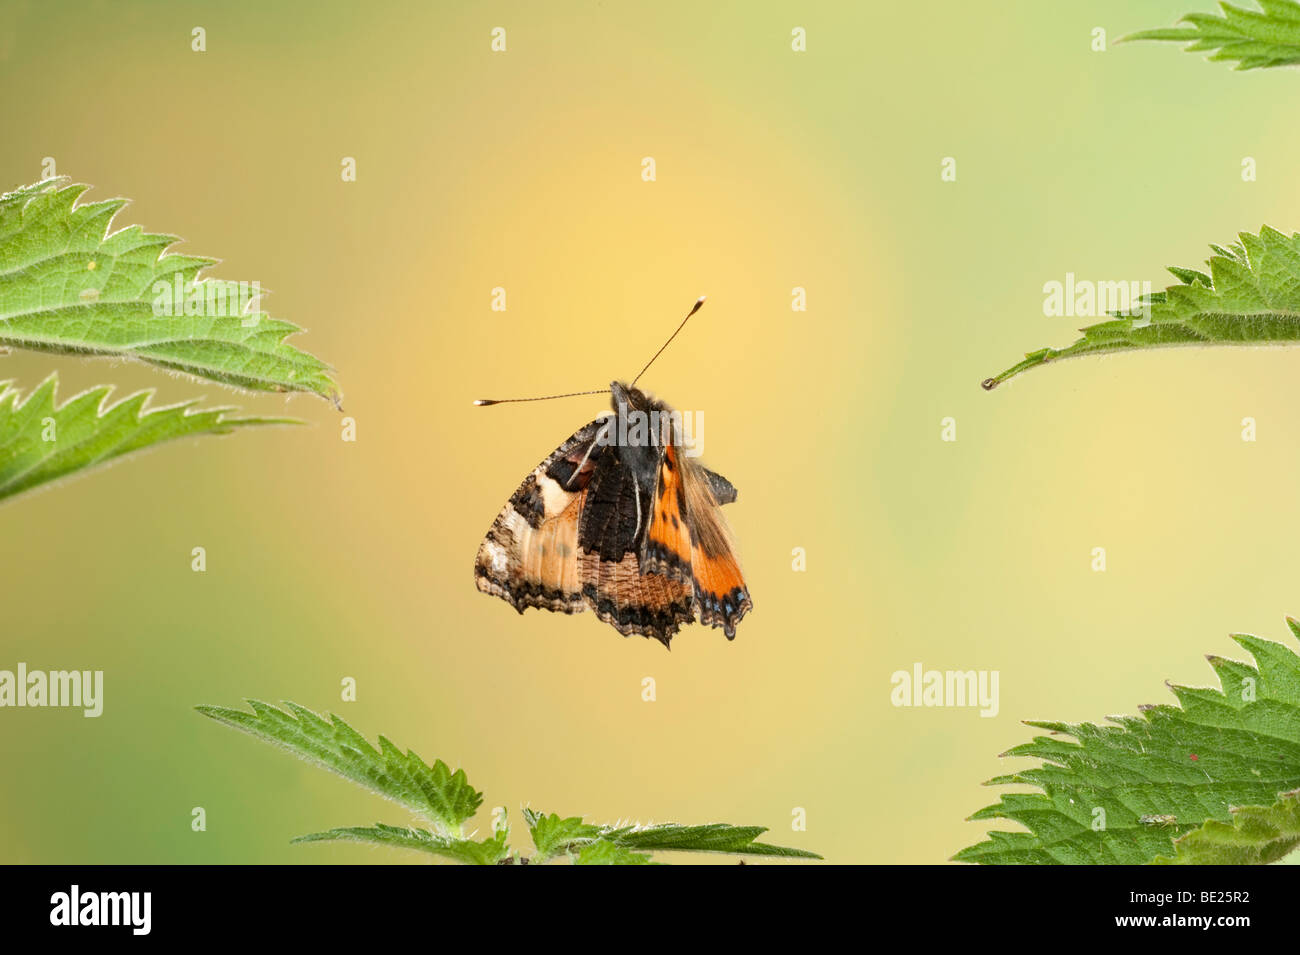 Small Tortoiseshell Butterfly Aglais urticae flying through stinging nettles high speed photographic technique.. - Stock Image